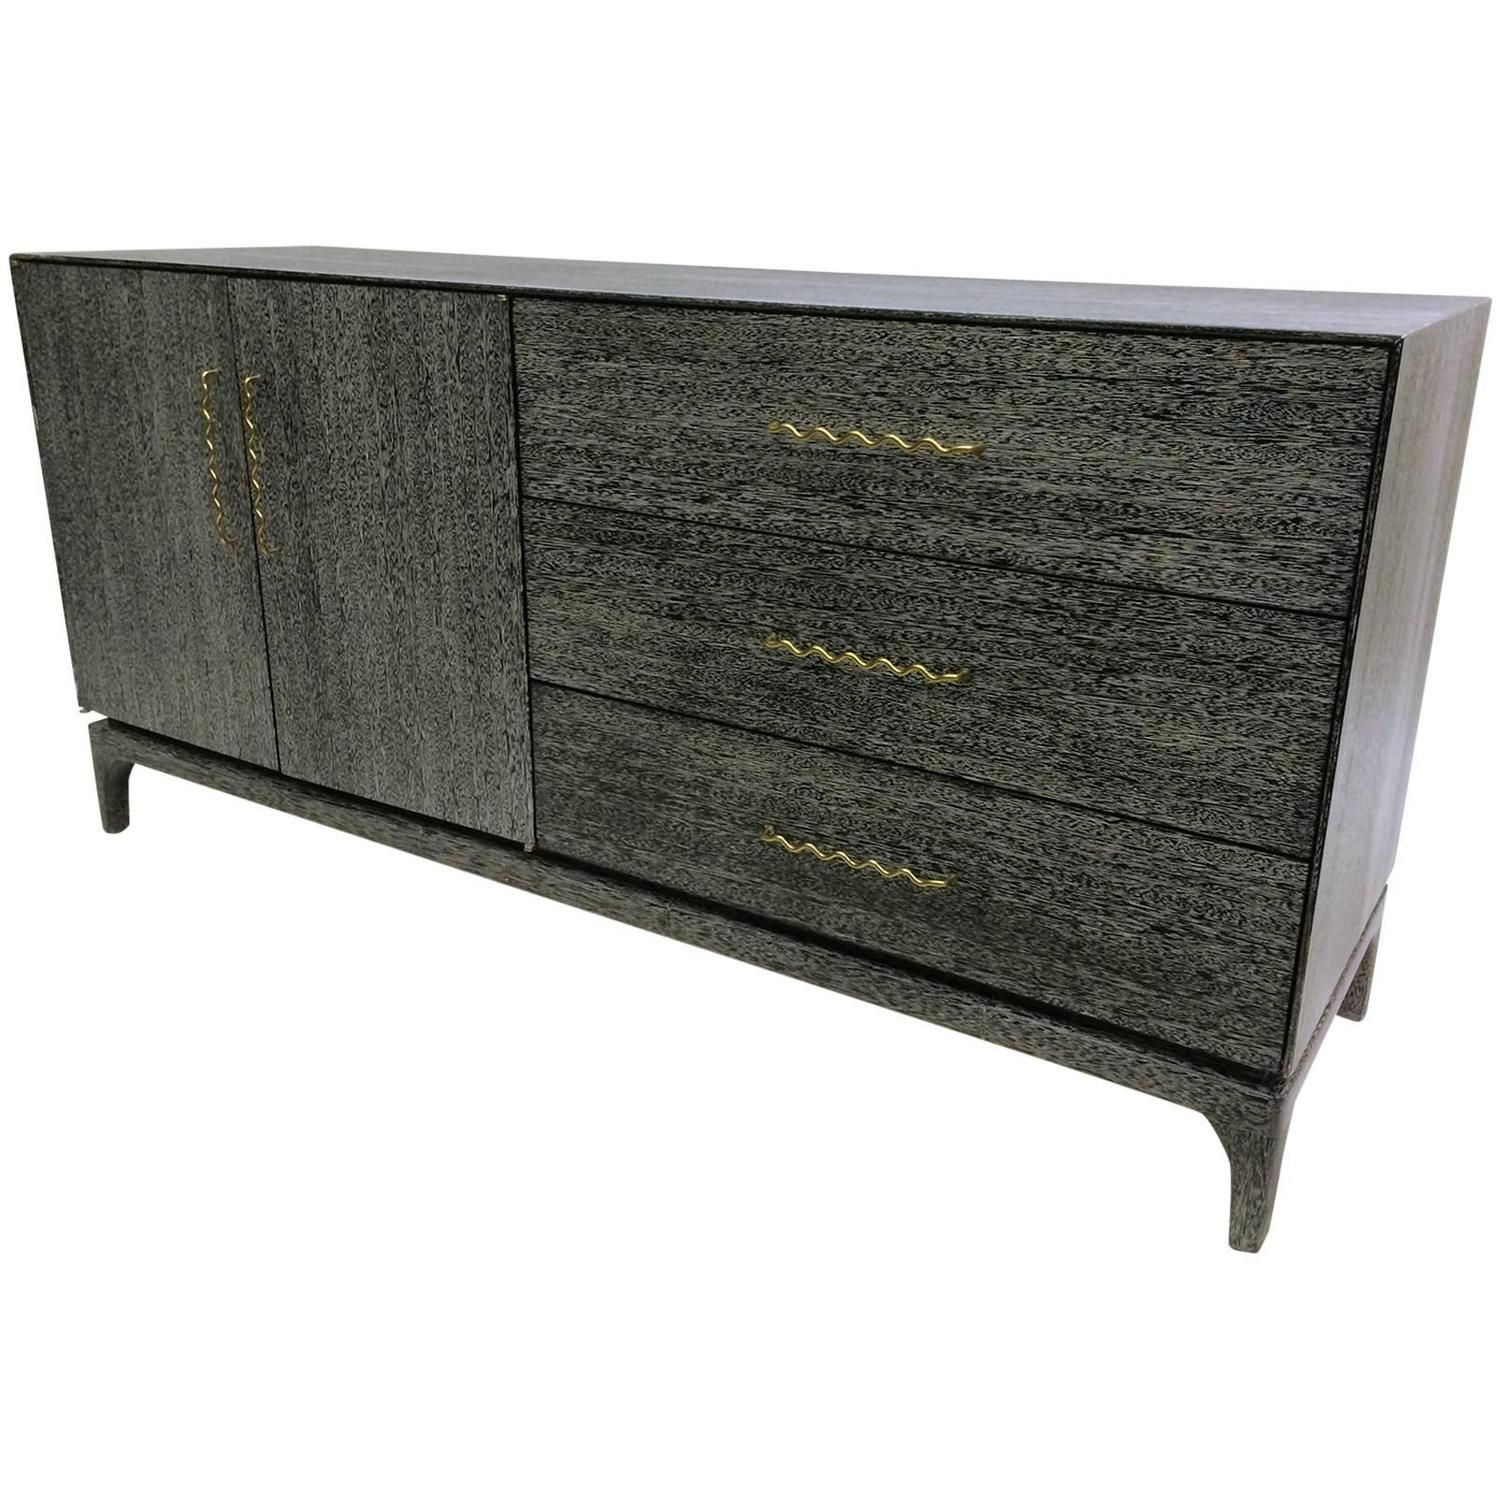 Chic Cerused Credenza By John Keal For Brown Saltman